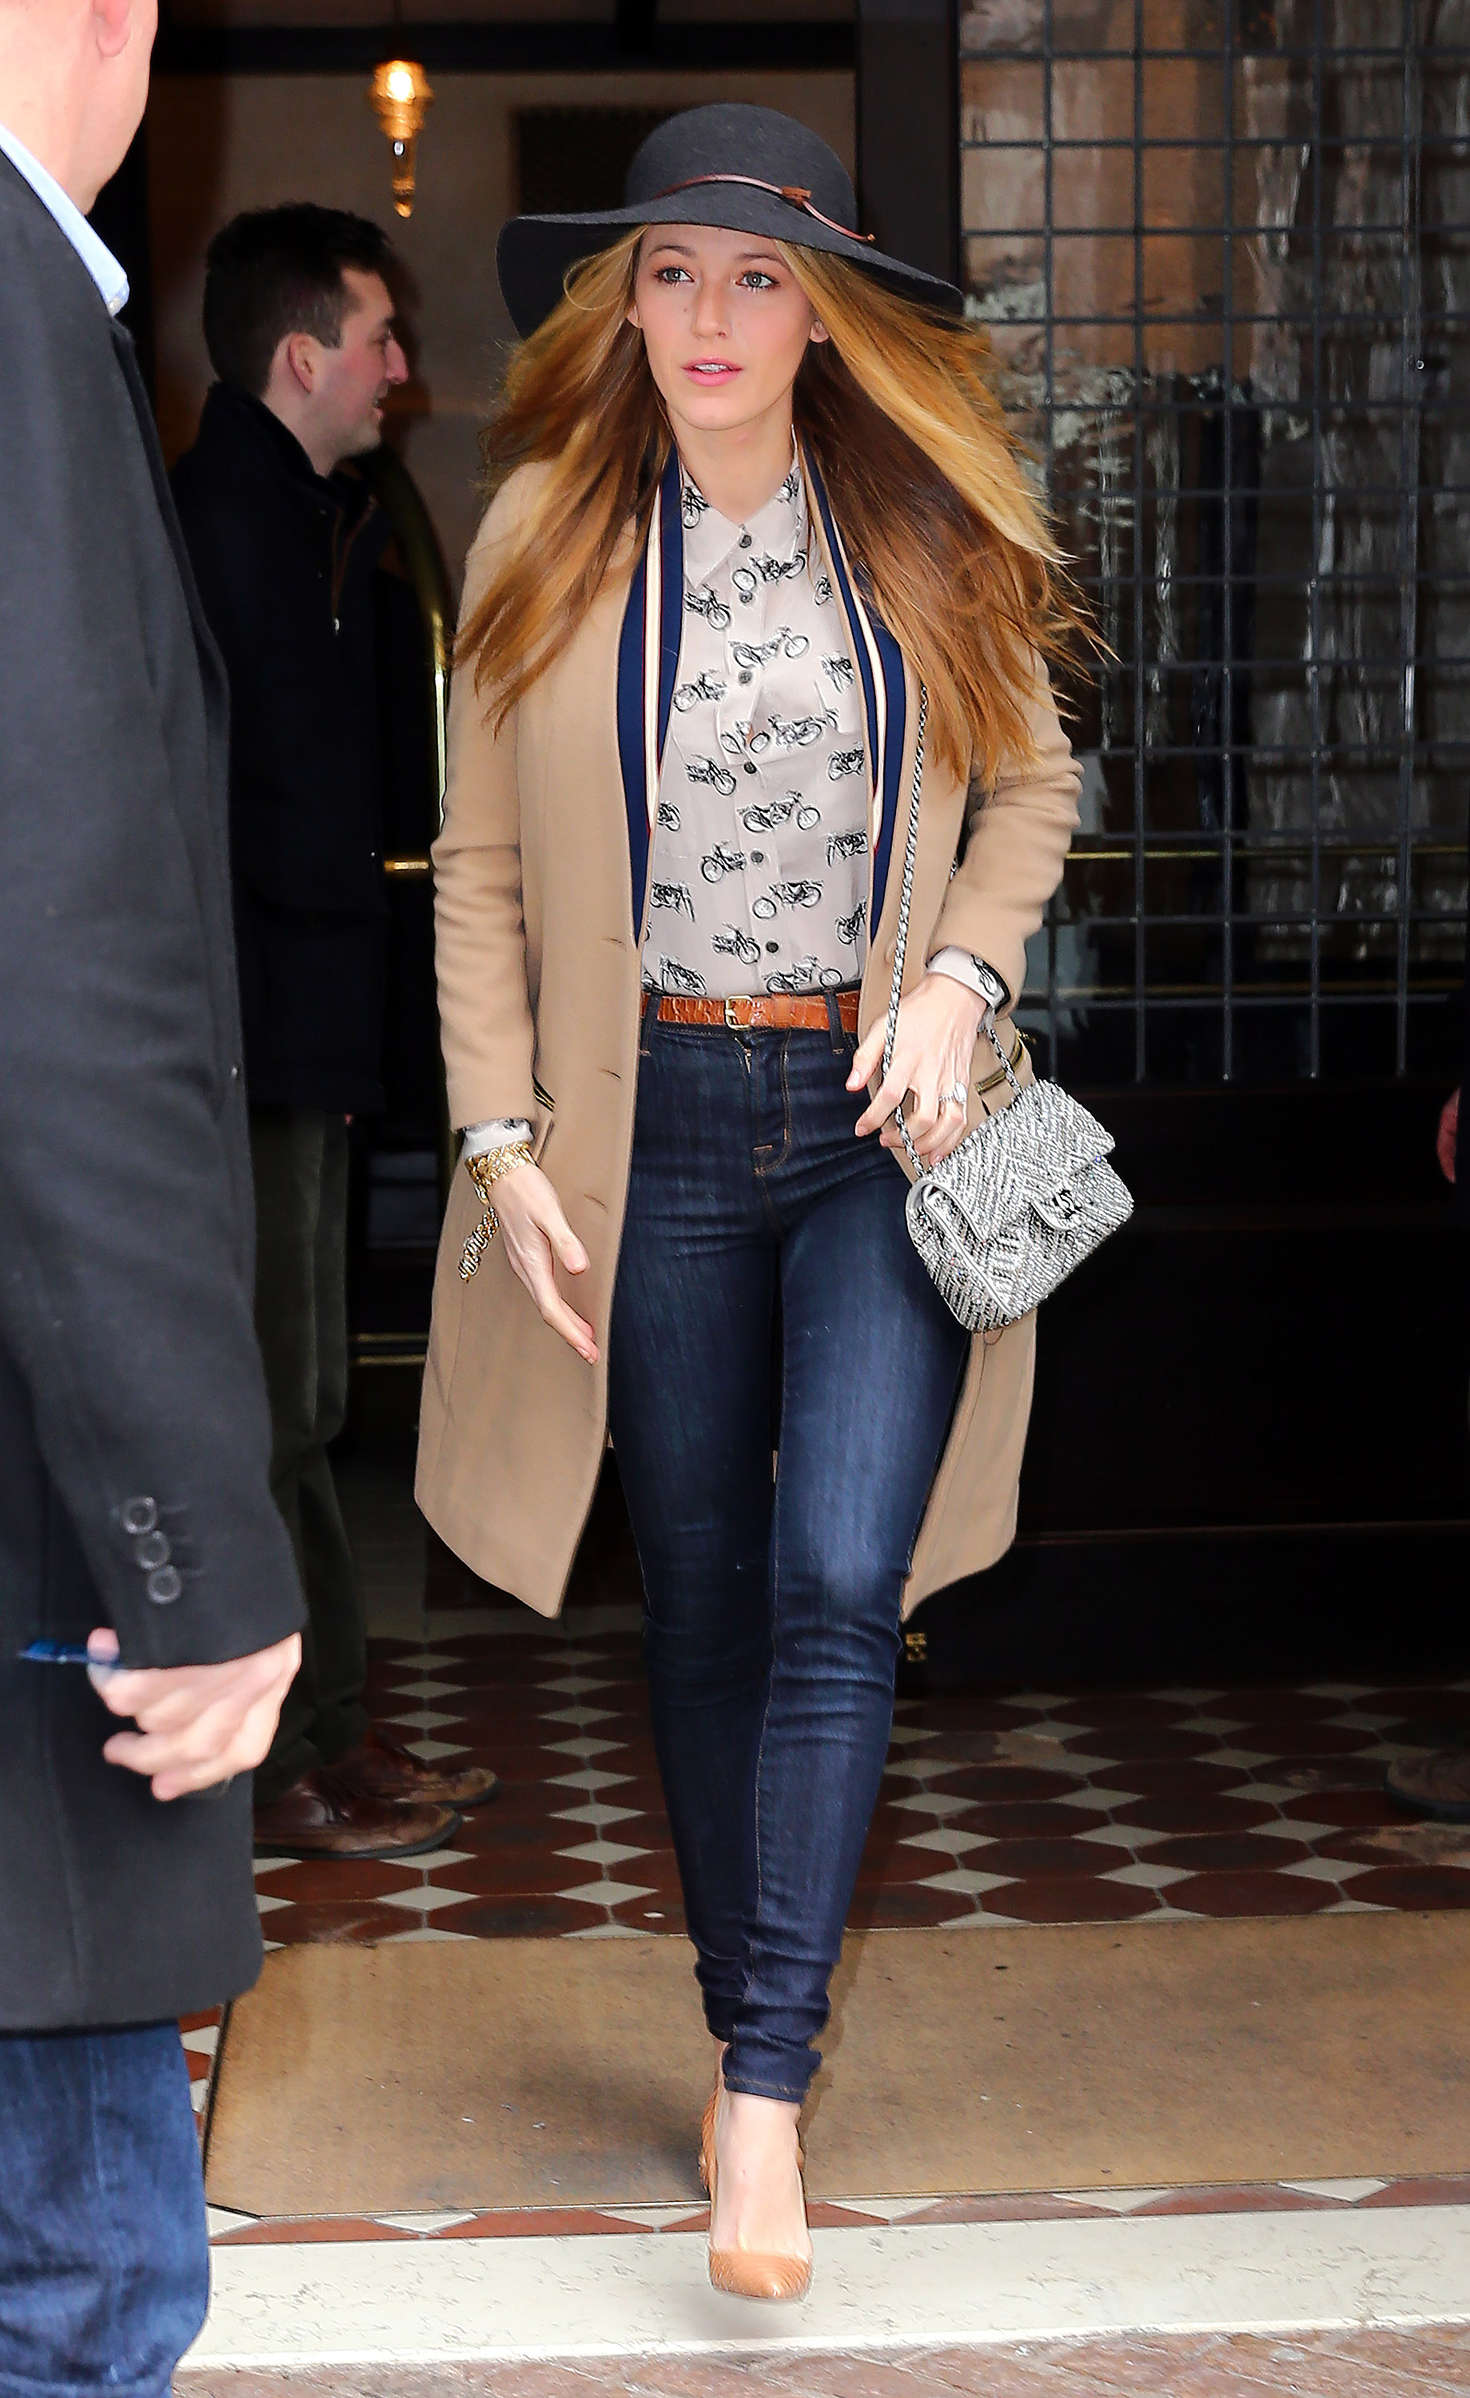 Blake Lively In Jeans Leaving Her Hotel In New York City